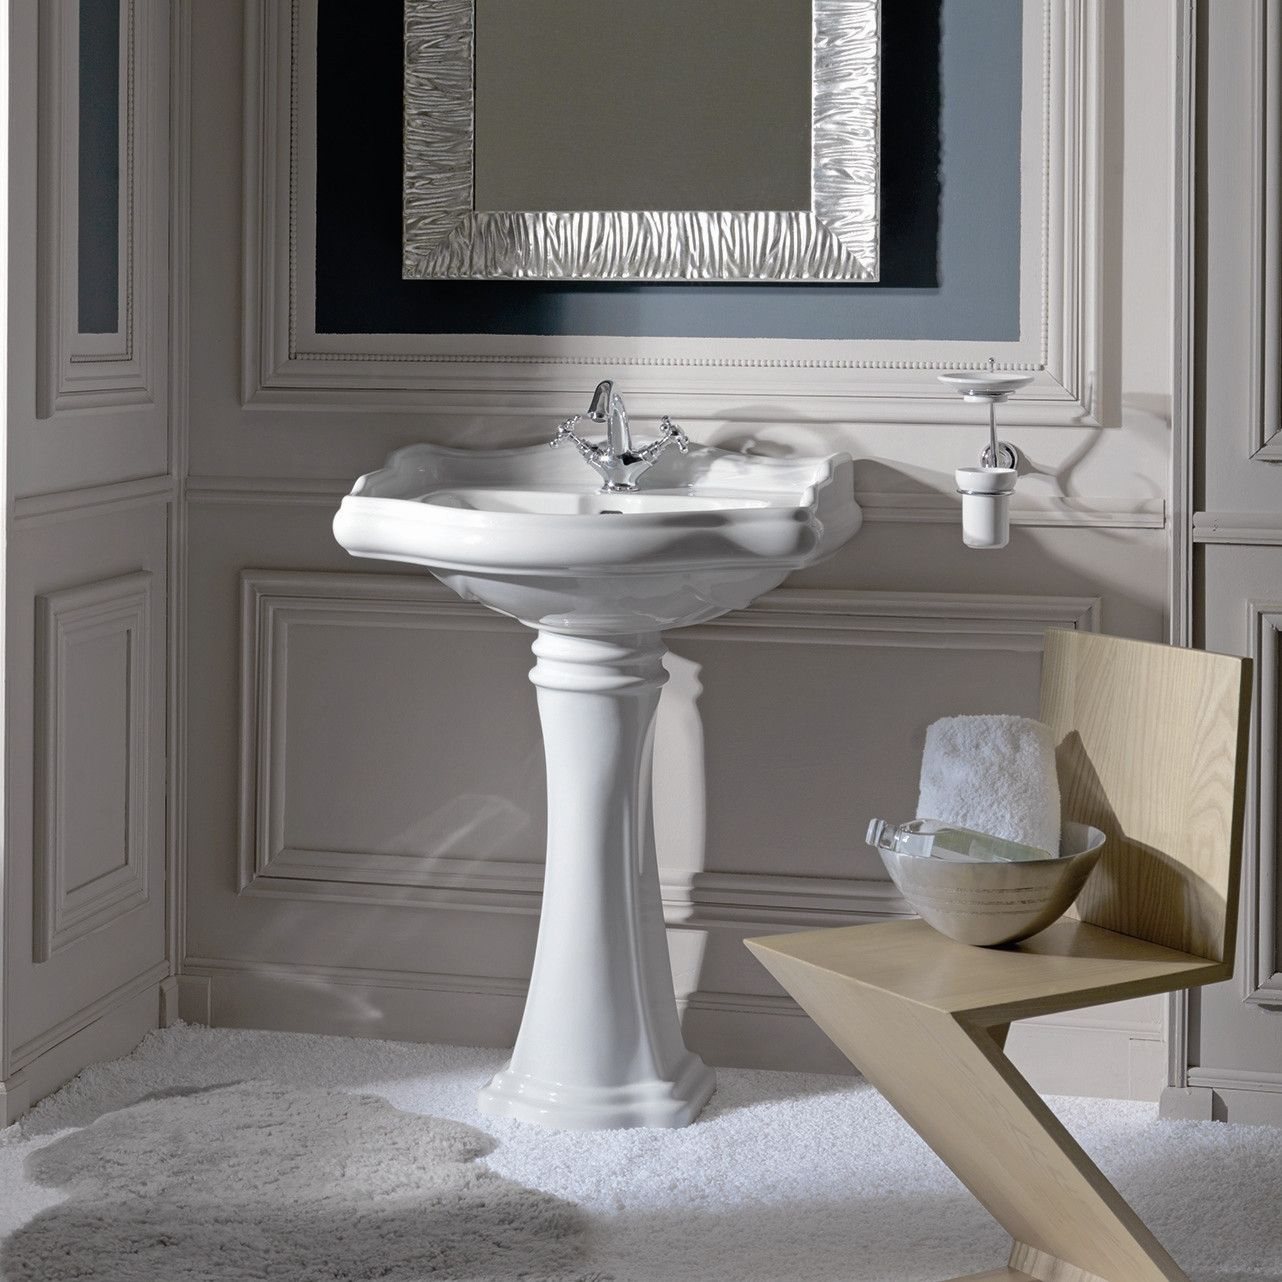 Easy To Follow Pedestal Sink Installation Guide